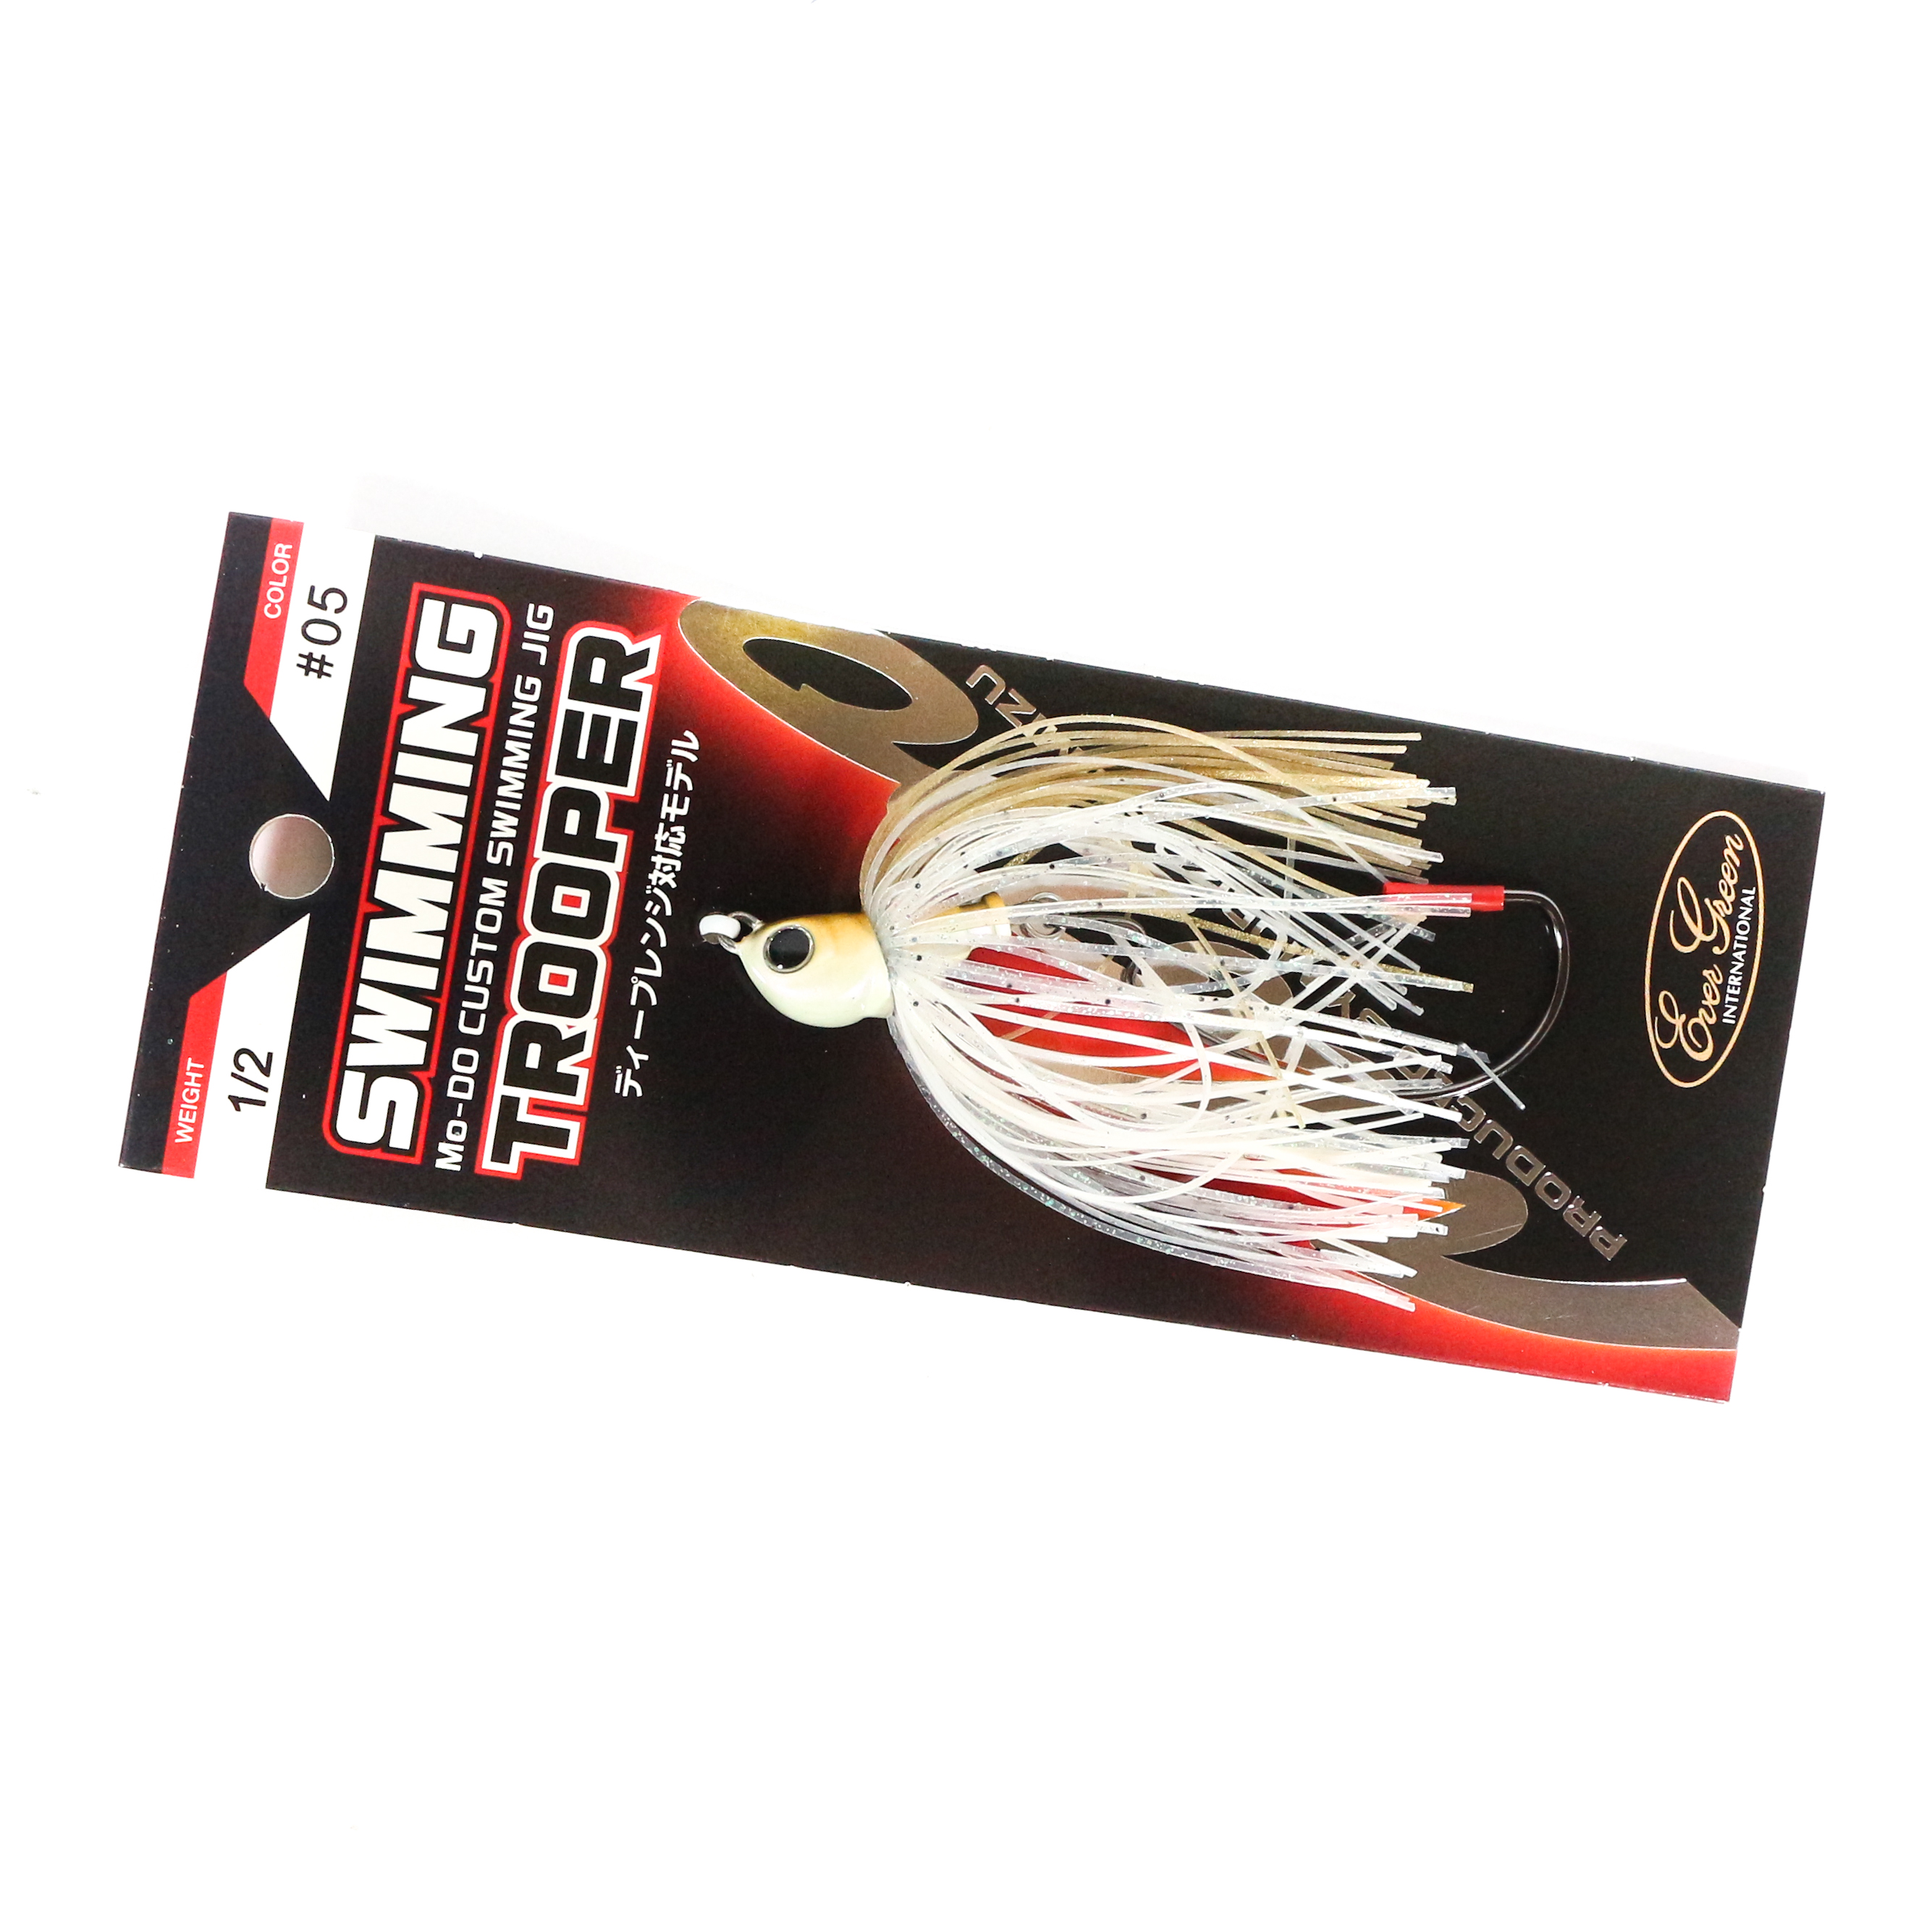 Evergreen Swimming Trooper Rubber Jig 1/2 oz Sinking Lure 05 (0102)